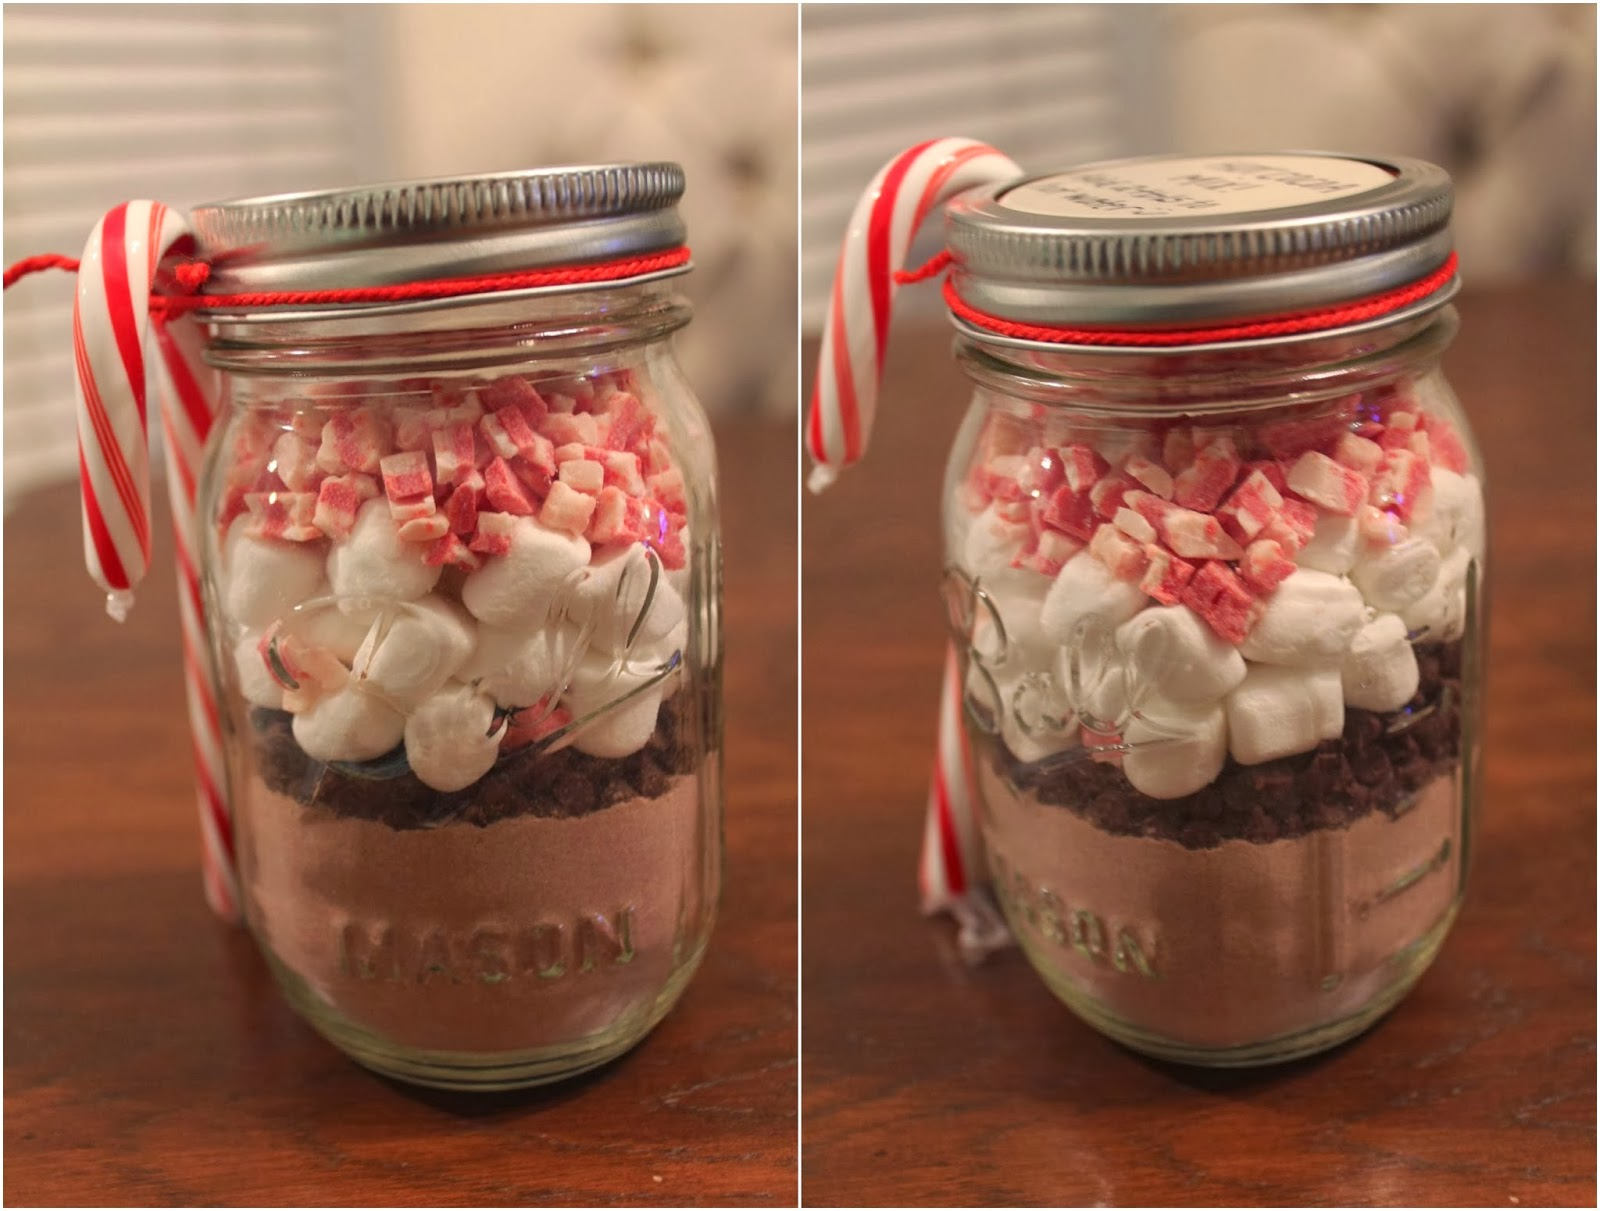 KEEP CALM AND CARRY ON: Friendsgiving {+DIY Hot Cocoa Mix In A Jar}